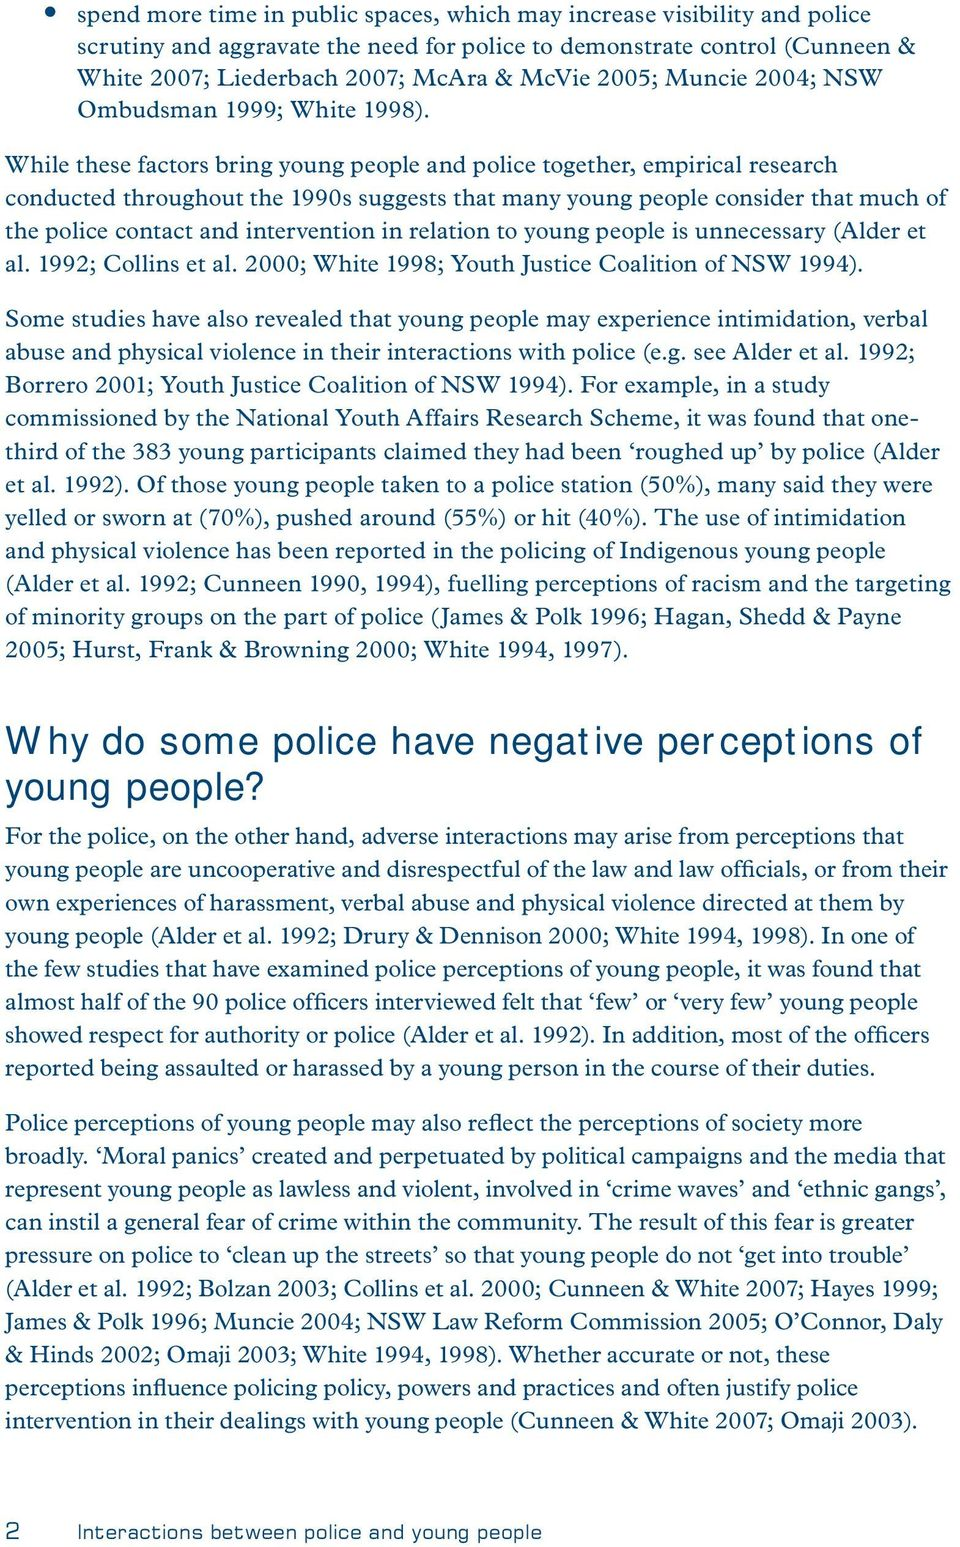 While these factors bring young people and police together, empirical research conducted throughout the 1990s suggests that many young people consider that much of the police contact and intervention